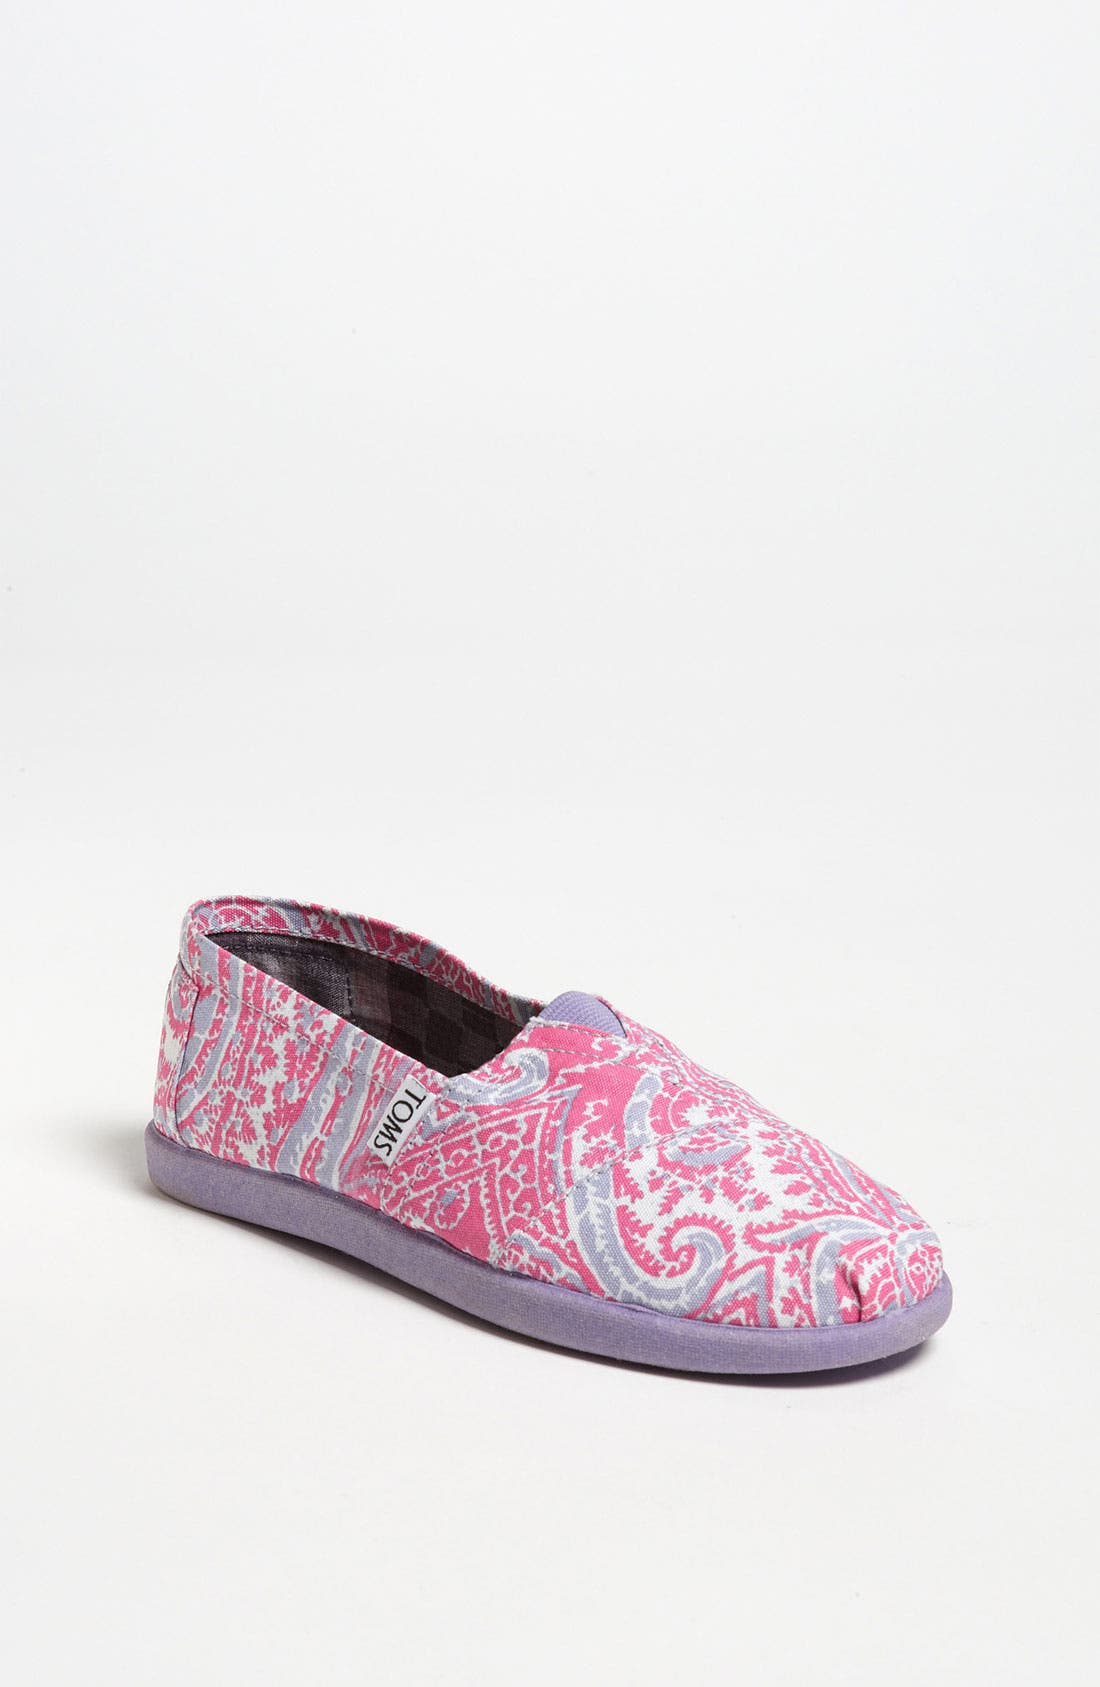 Main Image - TOMS 'Classic Youth - Paisley' Slip-On (Toddler, Little Kid & Big Kid)